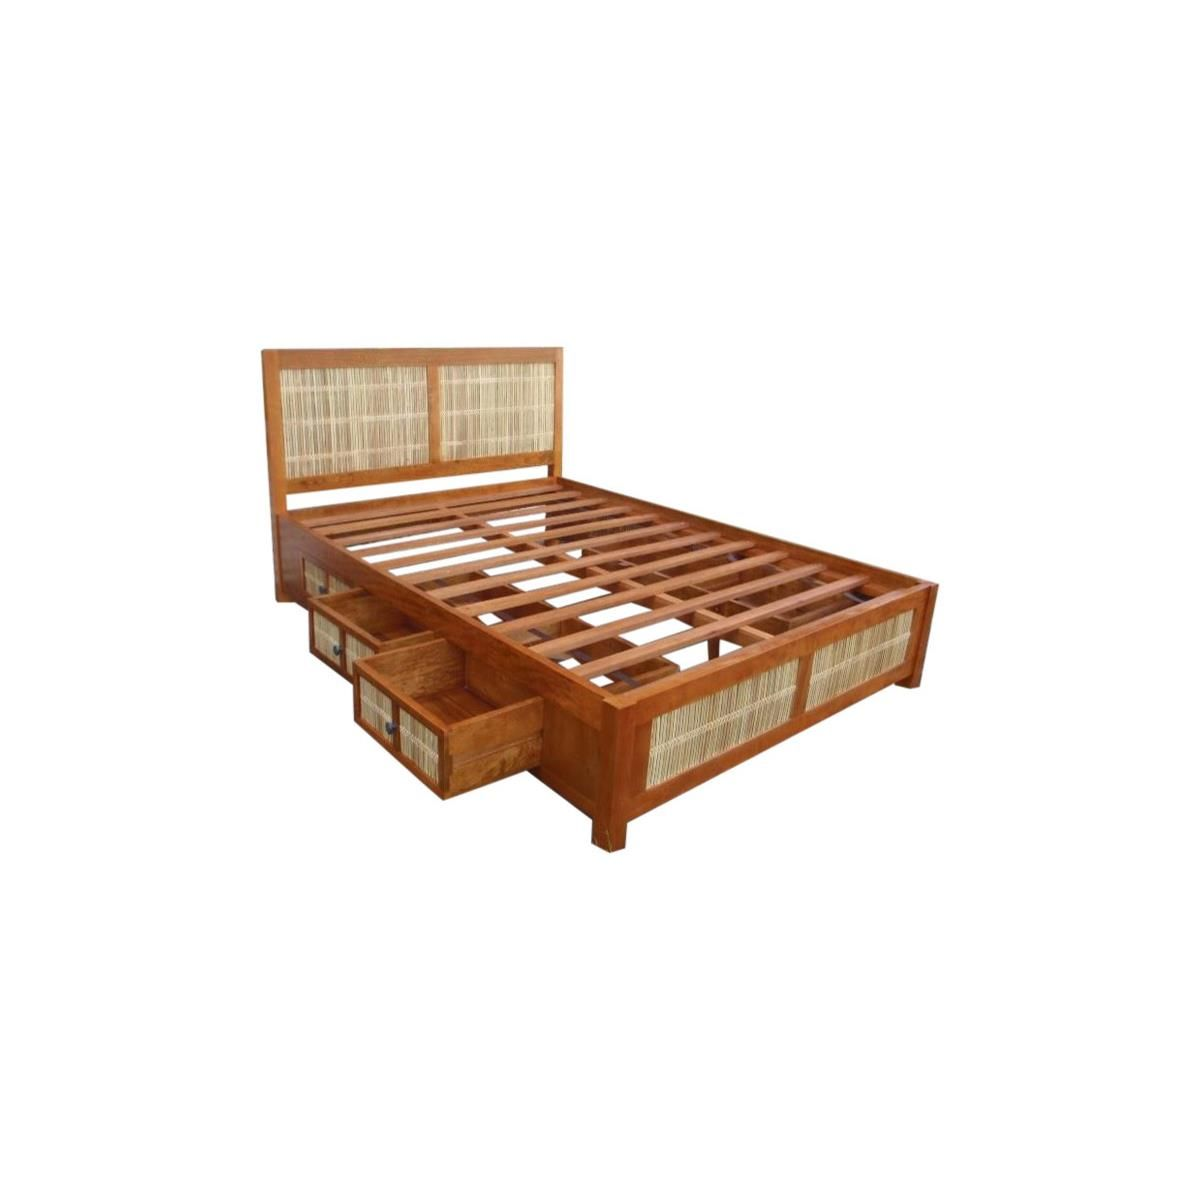 Bedroom Beds Matchstick Collection Beds With Drawers. Bed With DrawersSolid  Wood FurnitureFurniture UpholsteryBambooHawaiiBedsCaptains ...